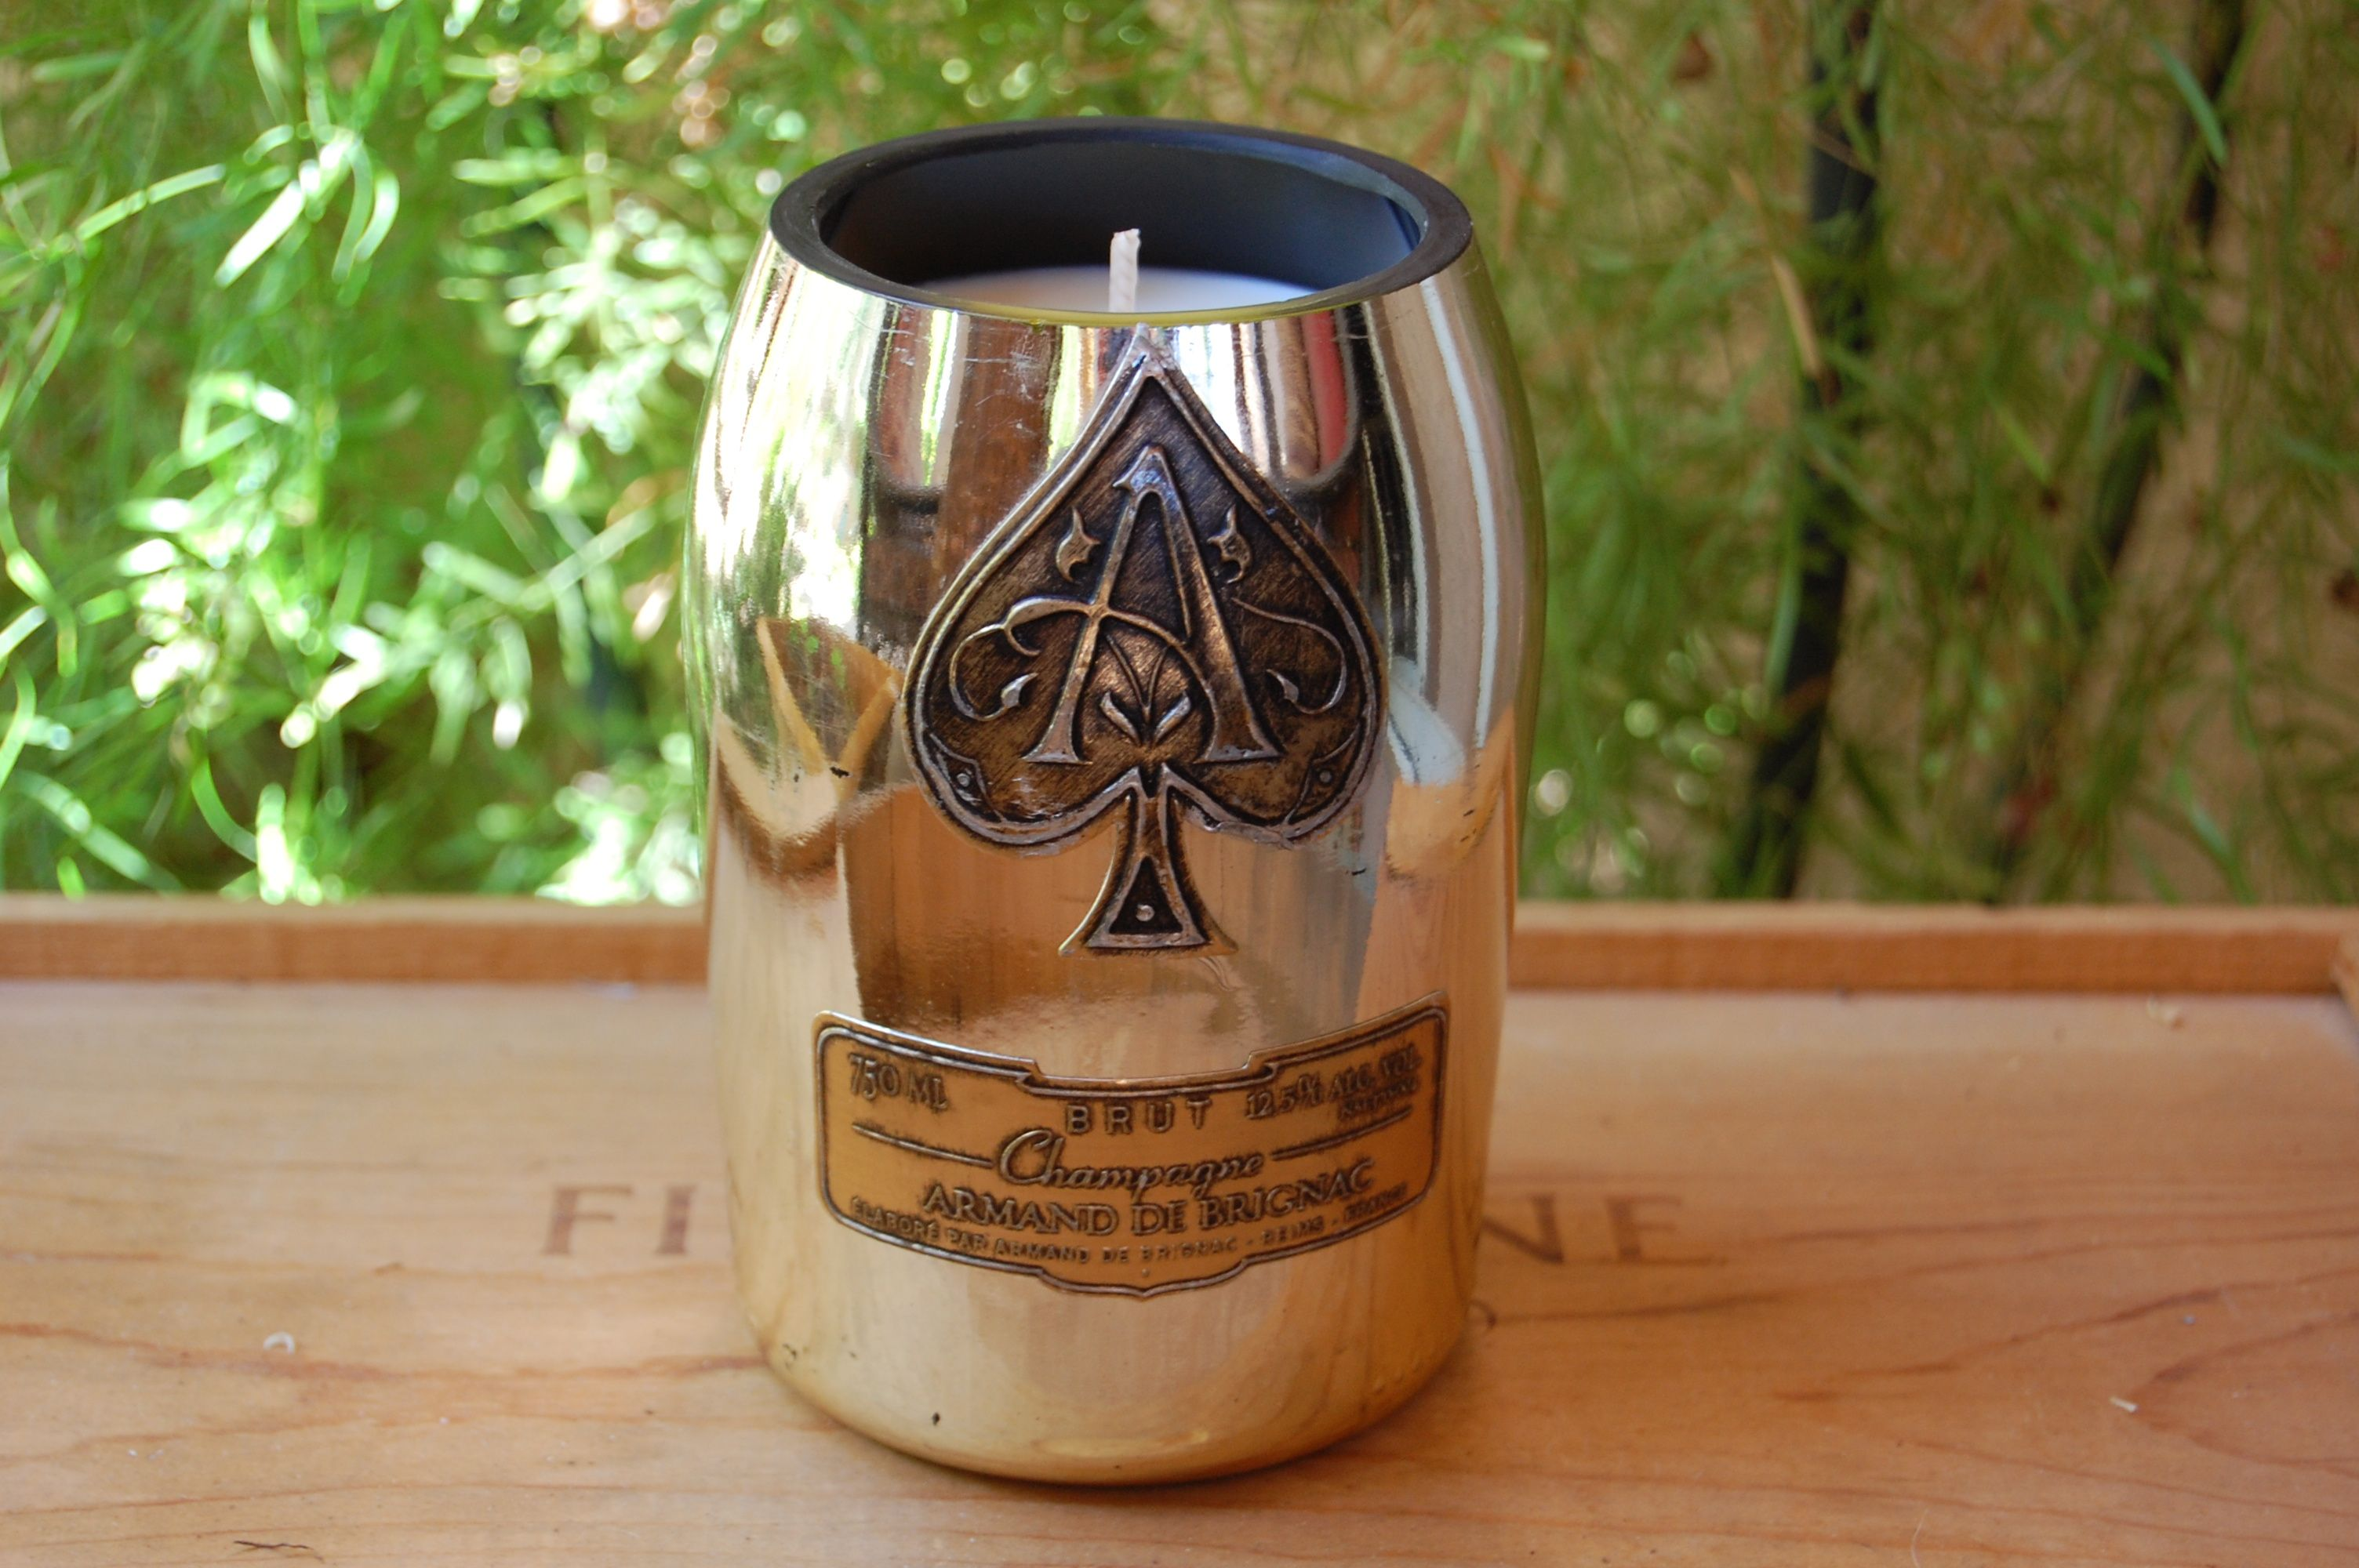 Ace of spades bottle candle recycled wine bottle candles ace of spades bottle candle reviewsmspy